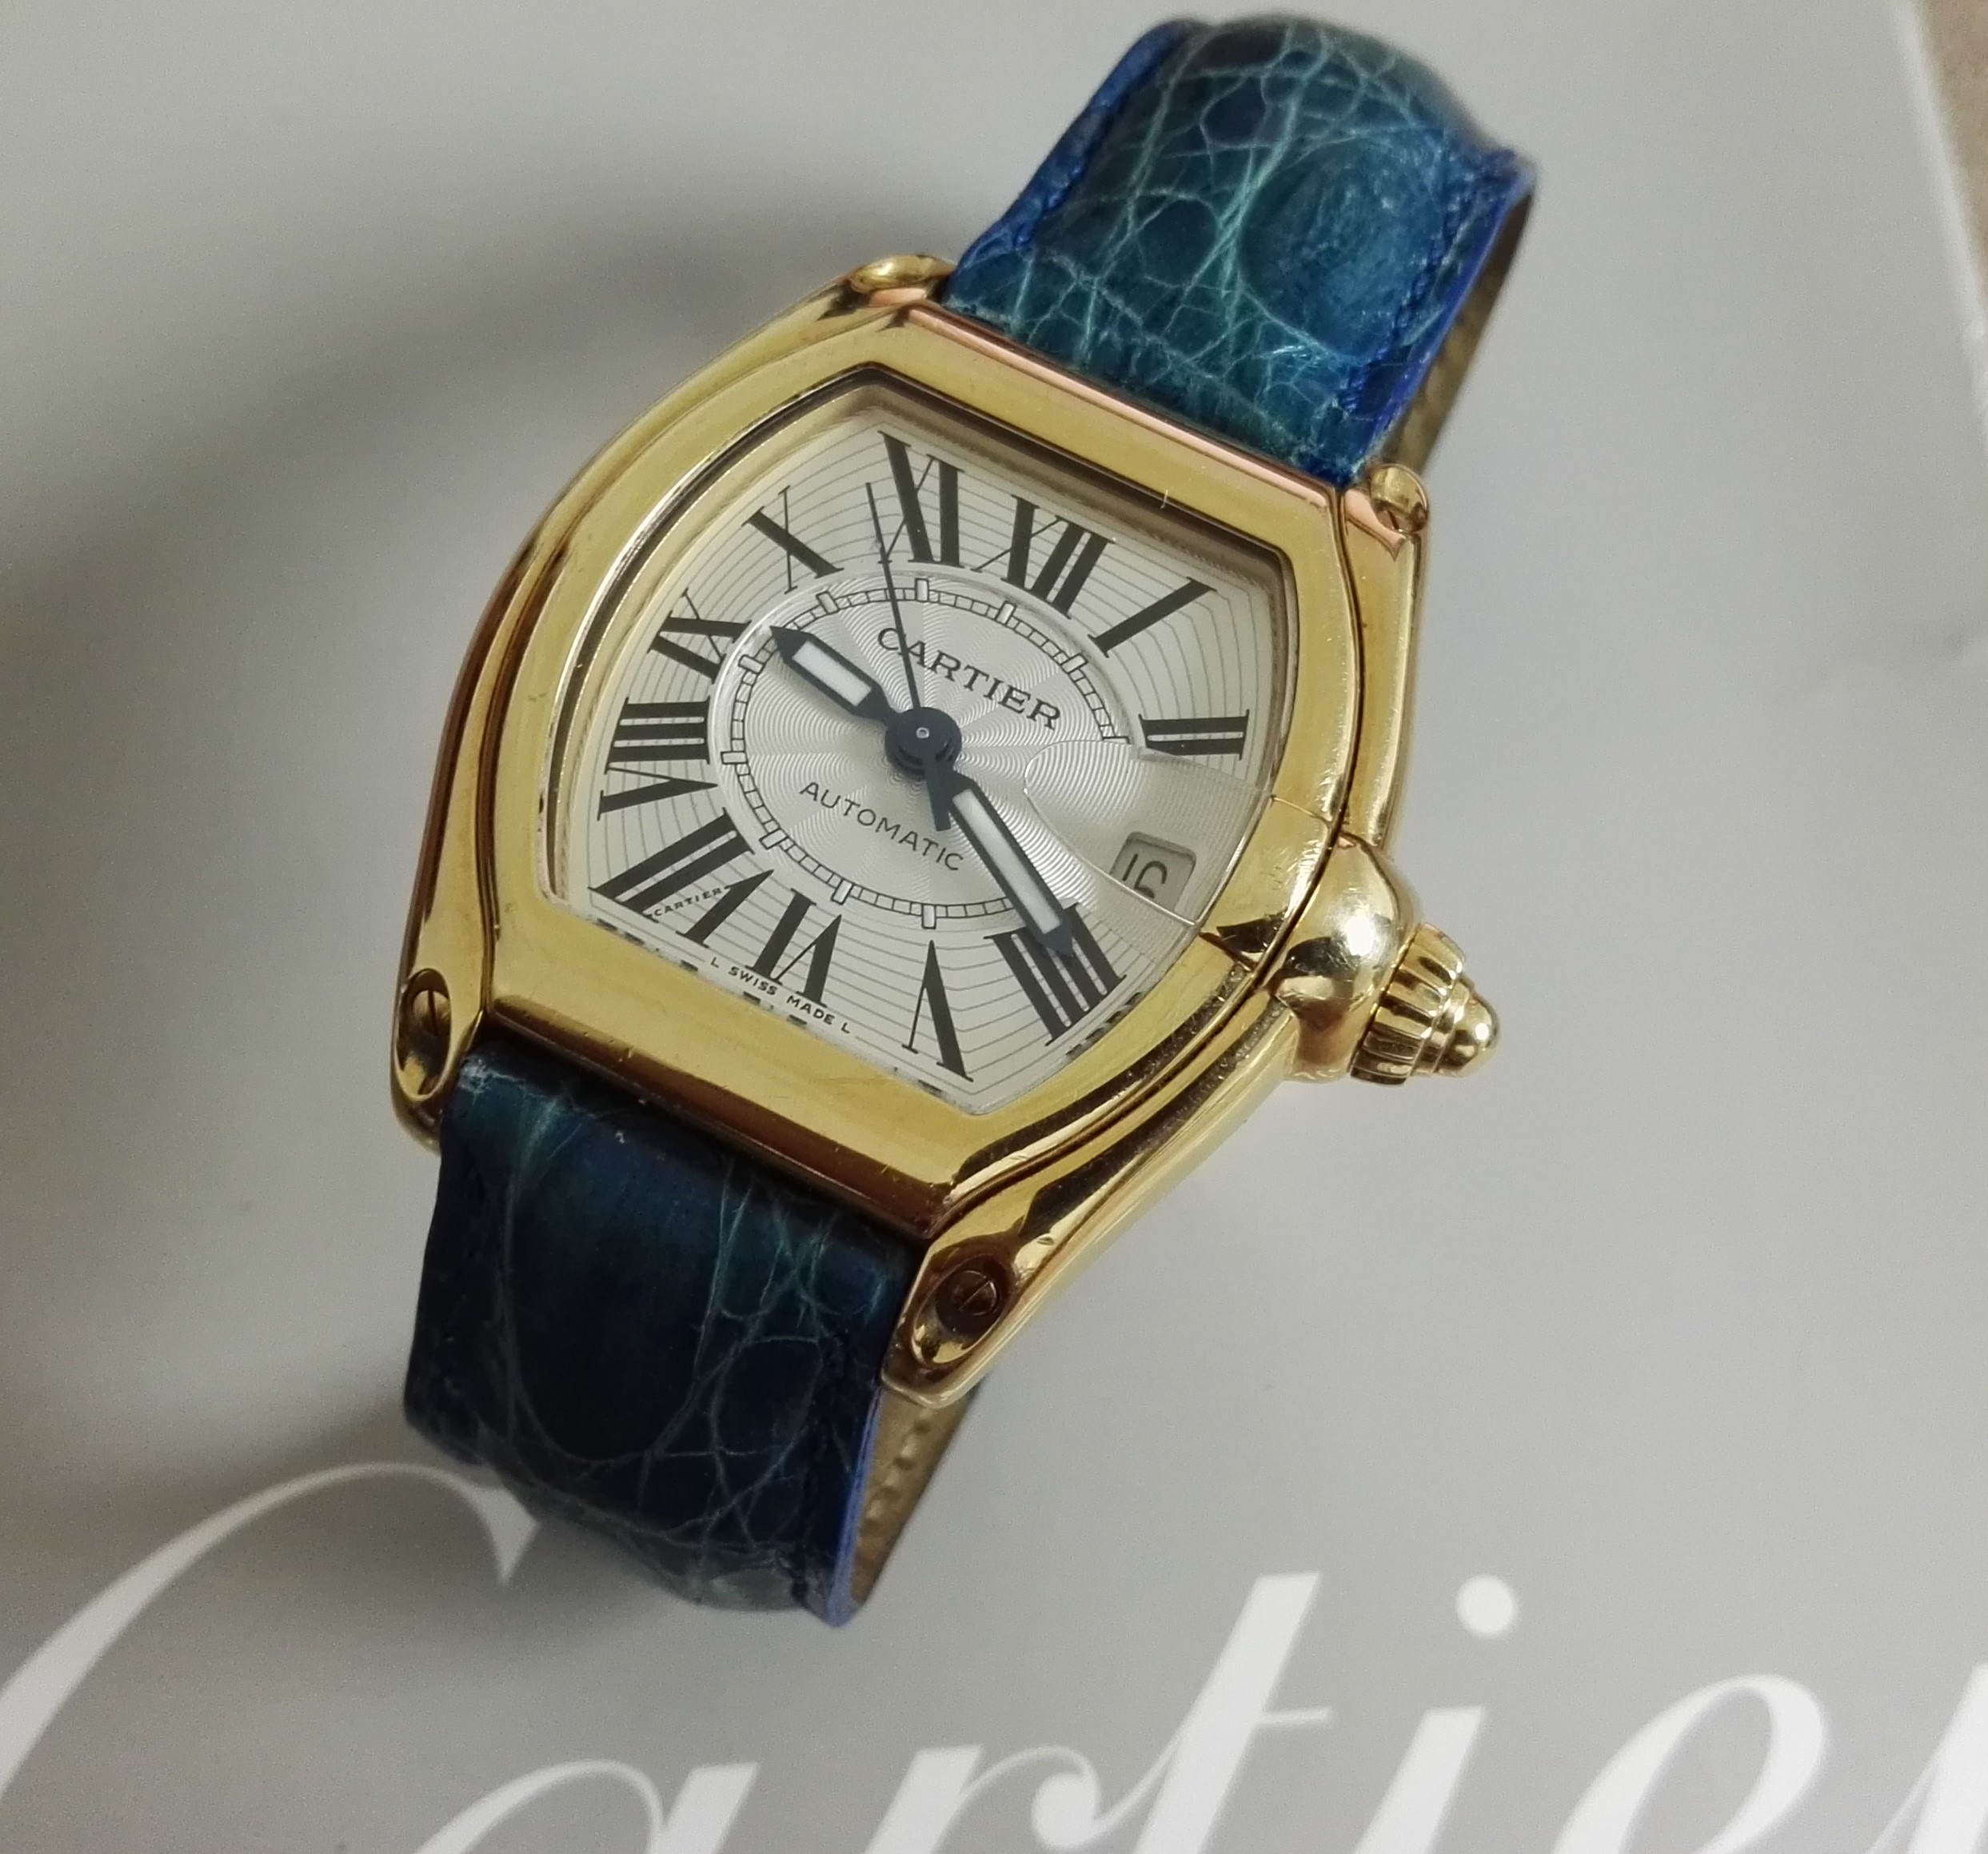 Cartier Roadster Roadster Ref.2524 Men's Solid 18k Yellow Gold Full Set | San Giorgio a Cremano